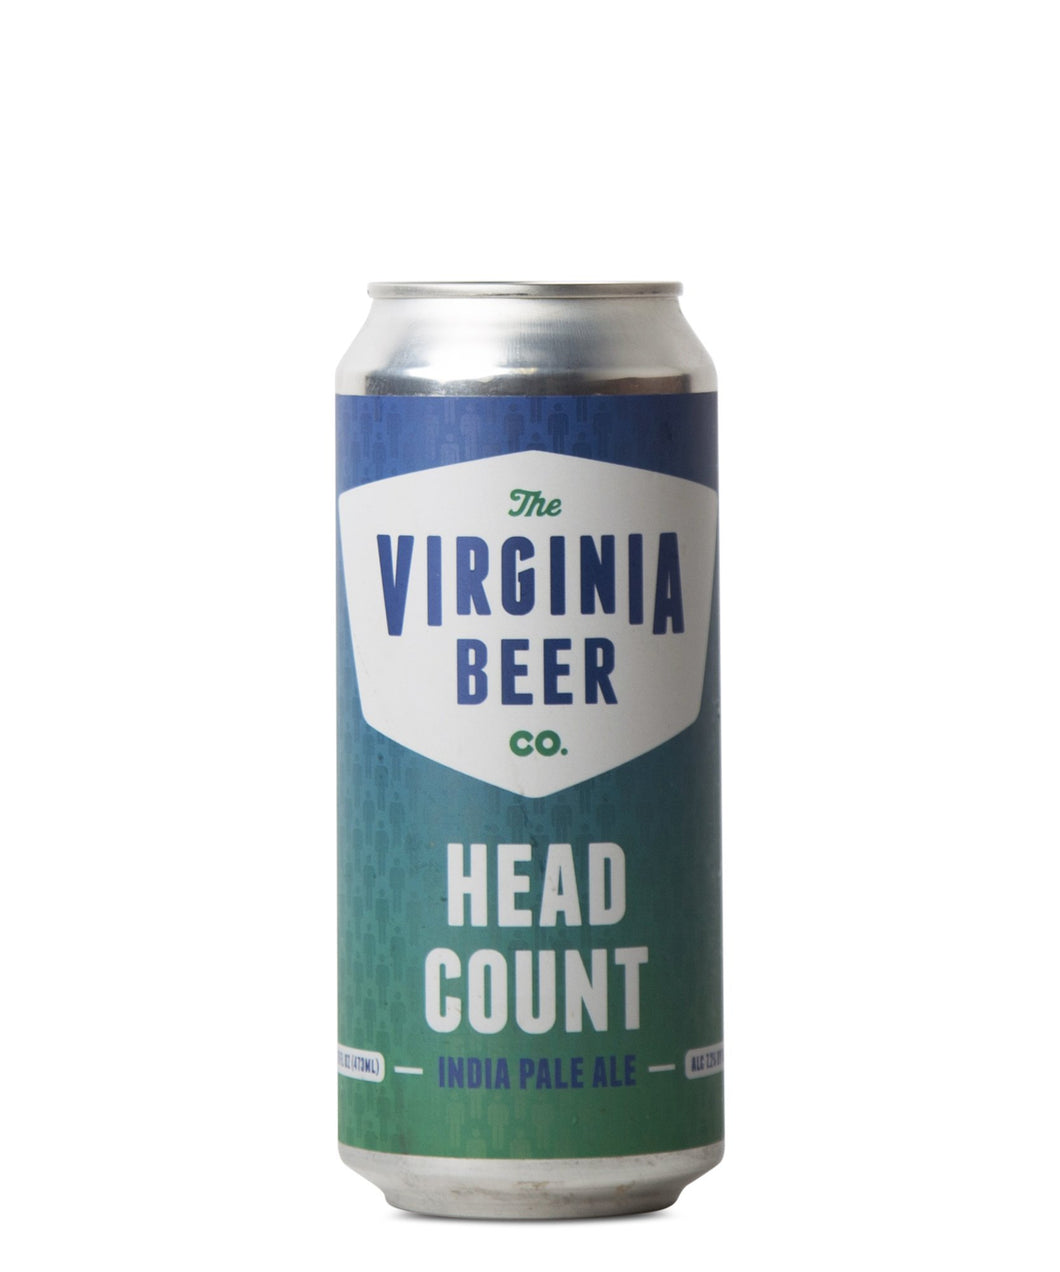 Head Count IPA - The Virginia Beer Company Delivered By TapRm